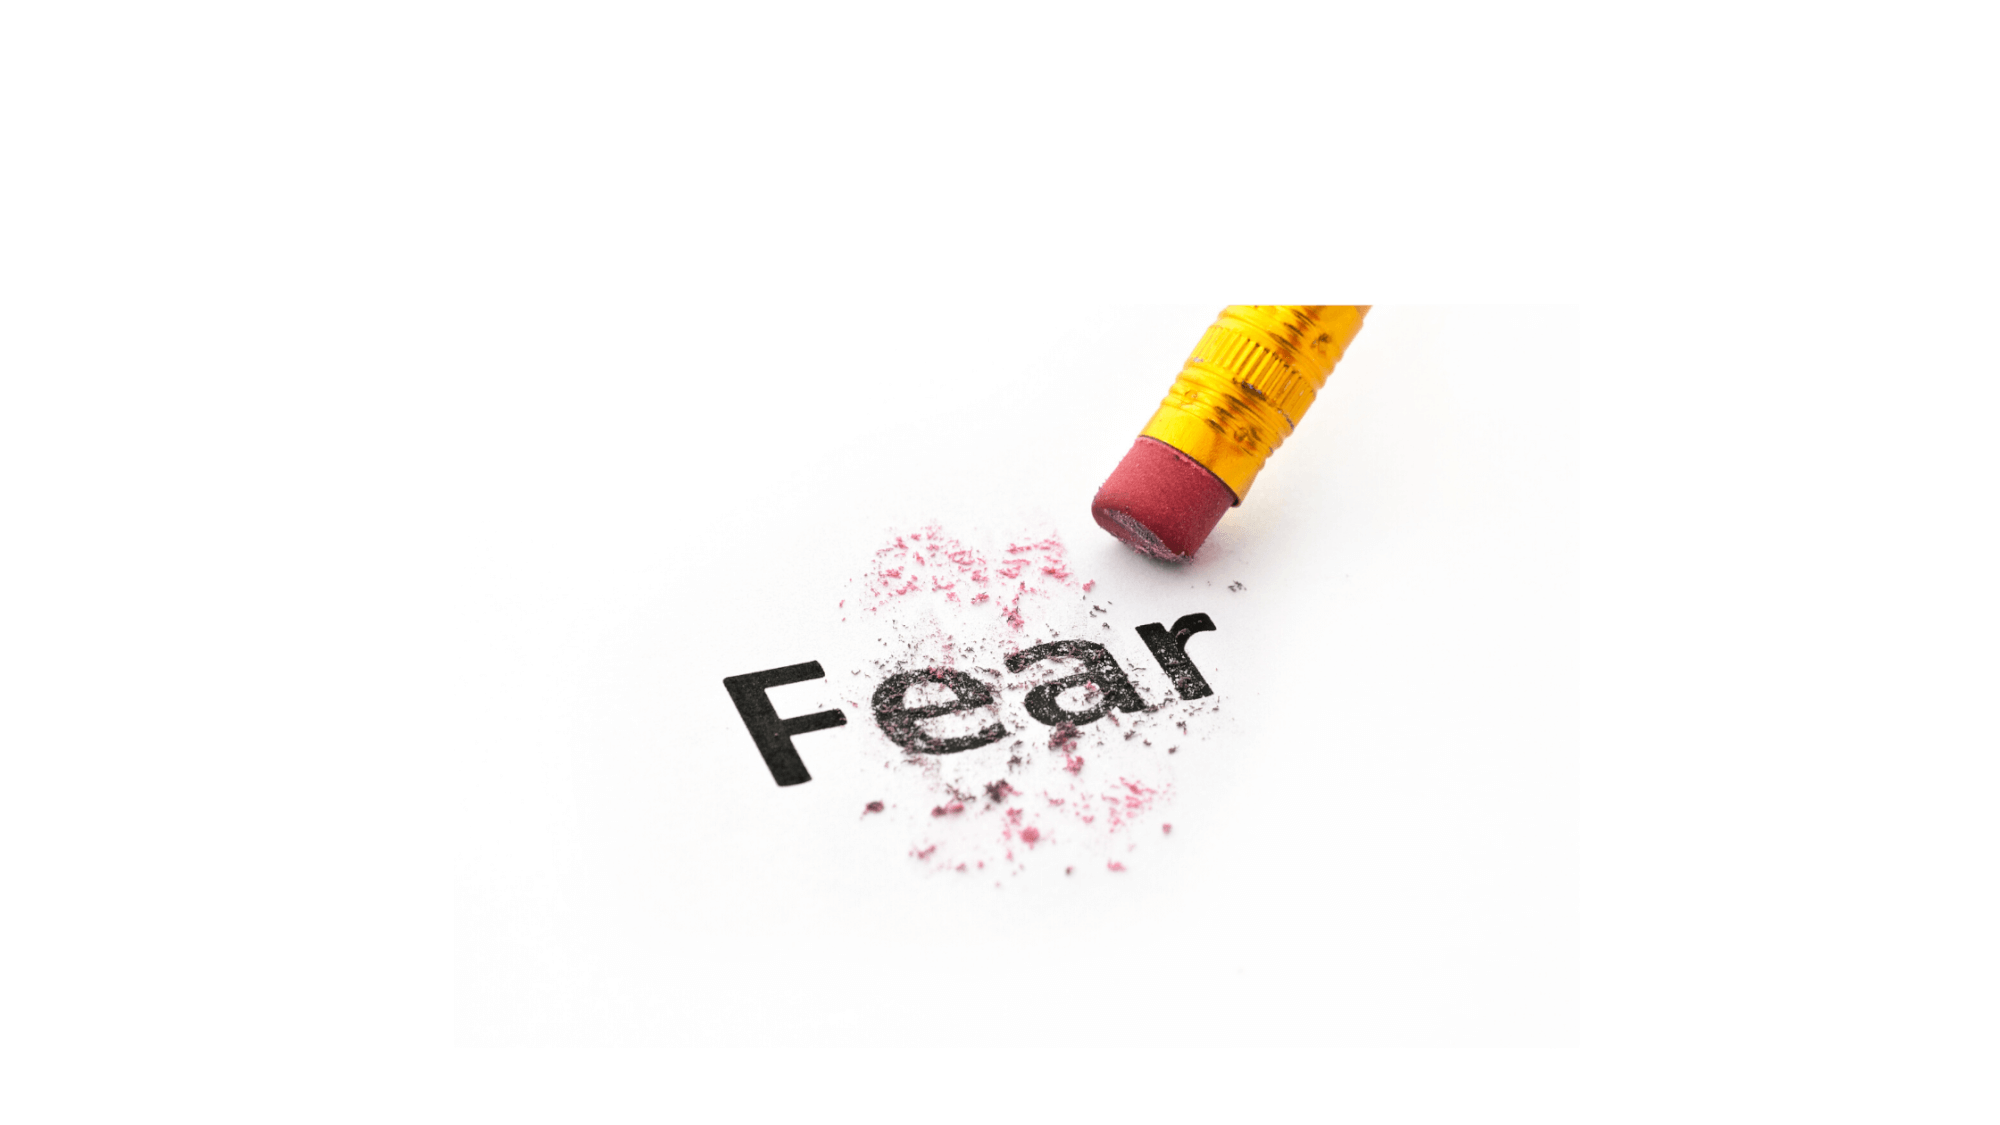 Pencil erasing the word fear-Coping during a Crisis